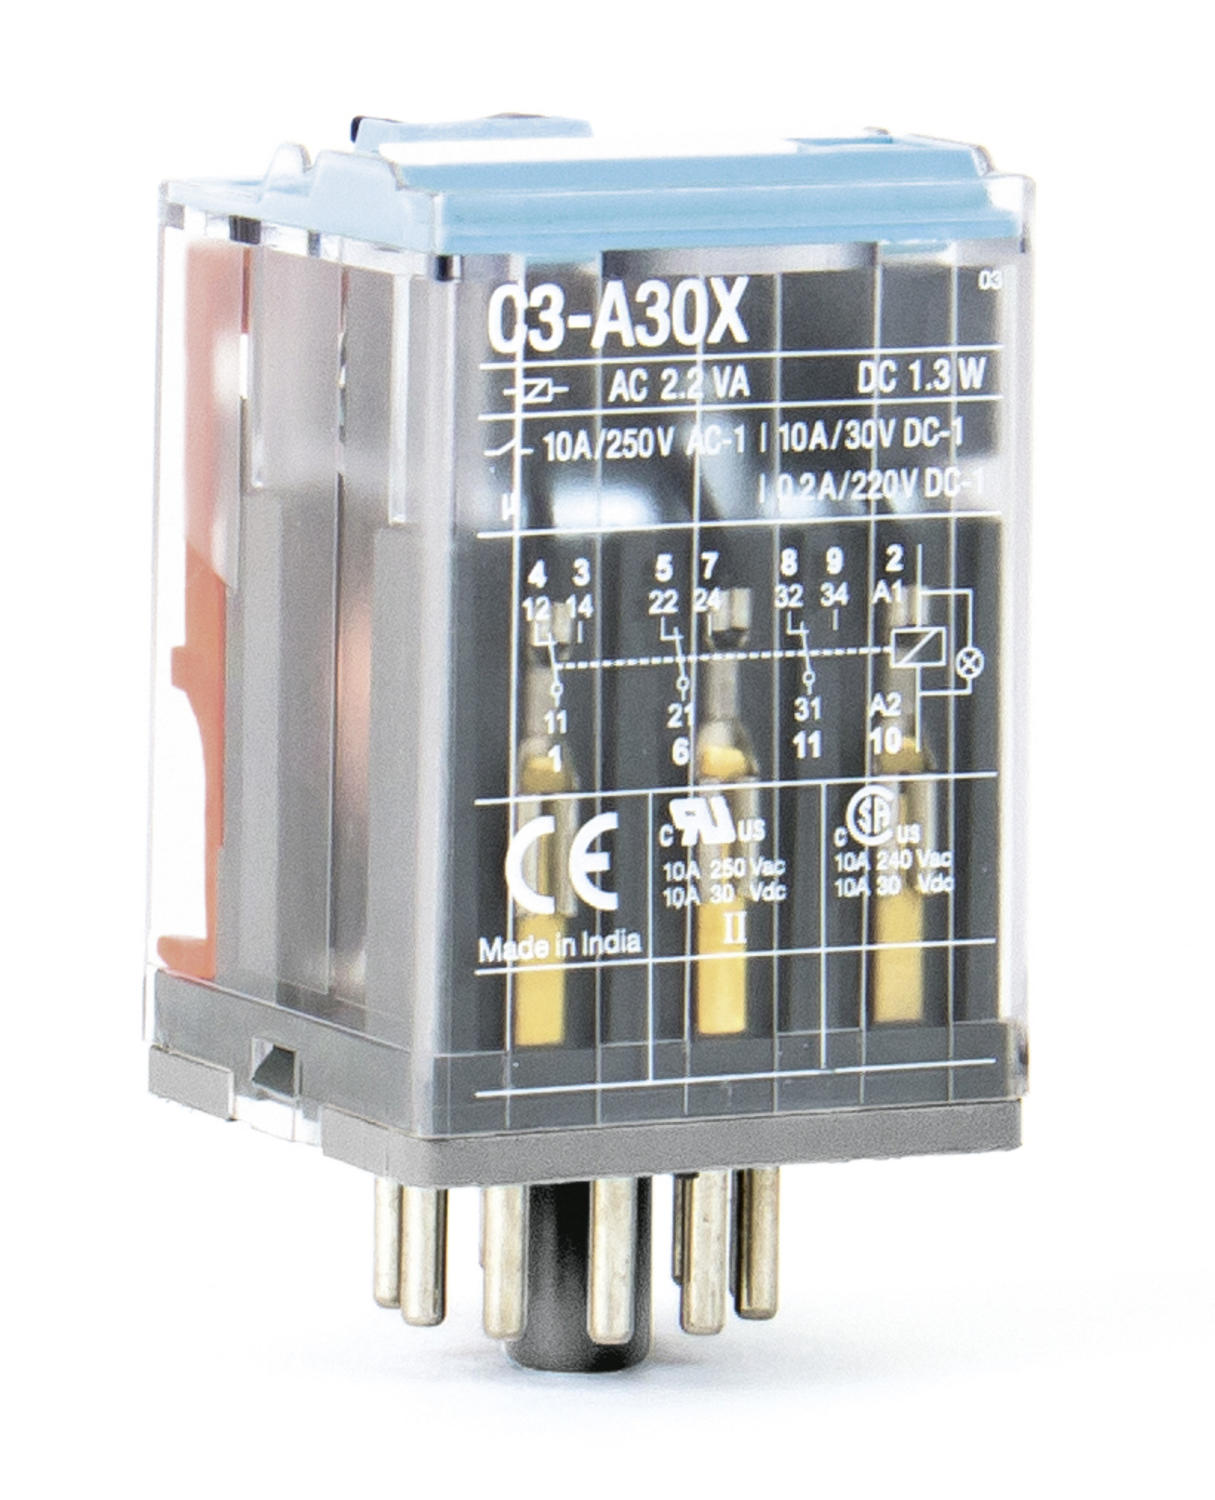 C3 industrial relay 3-pole 10 A C3-A30X24A - OEM Automatic (UK)